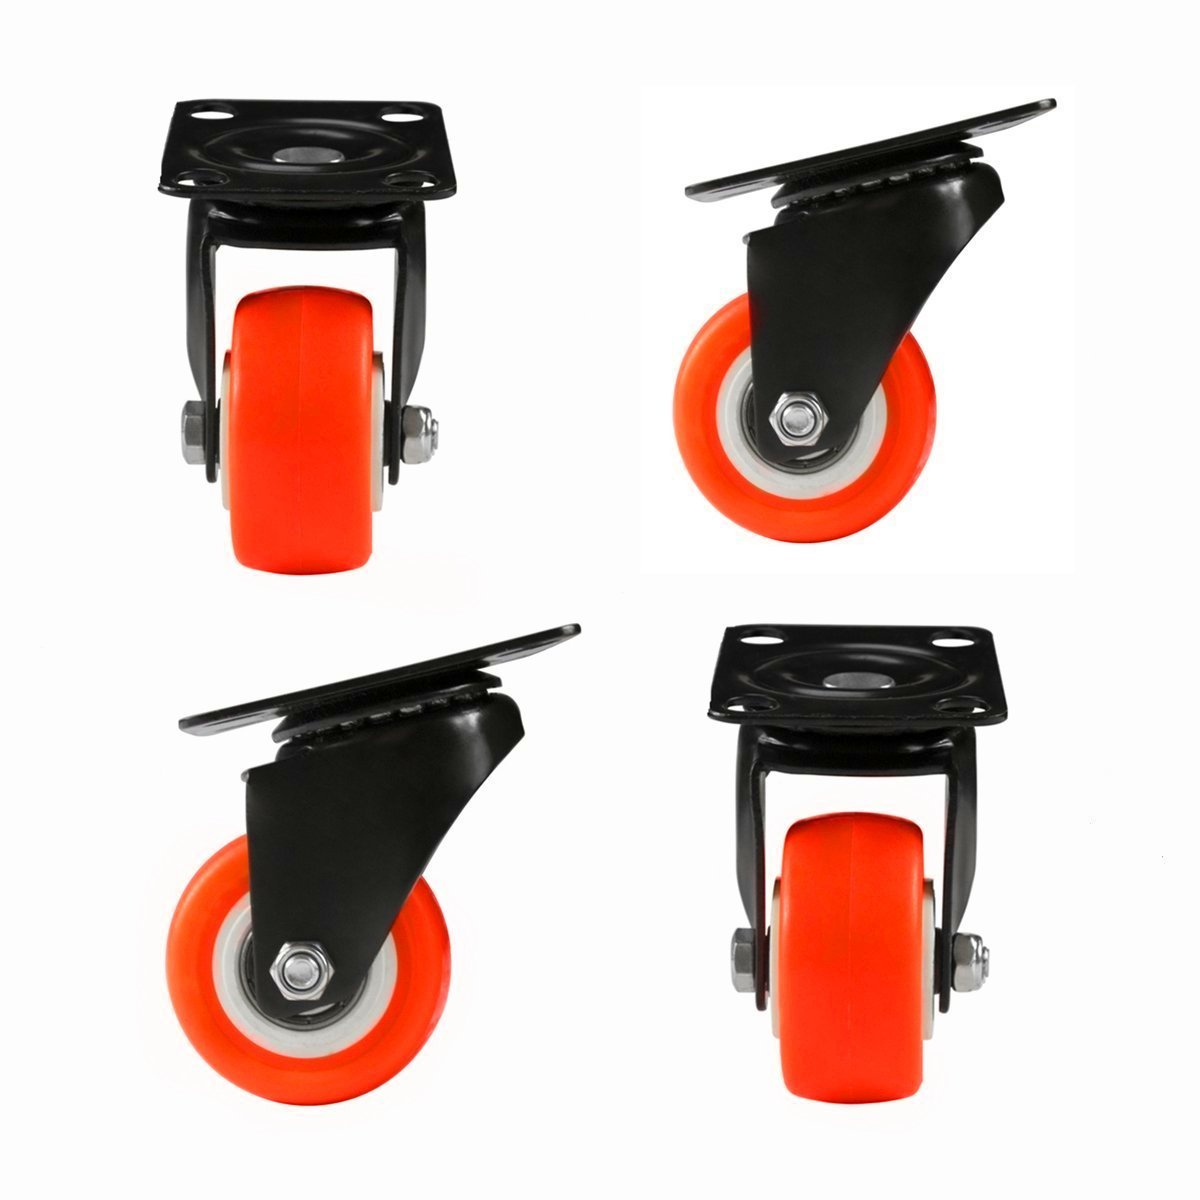 Non Brake/_Orange OMOO 8T8 1.5inch Replacement Top Plate Swivel Caster Wheels 4 Pack Rubber Base Heavy Duty 440lb for Furniture Removable Carts Stools Tables etc